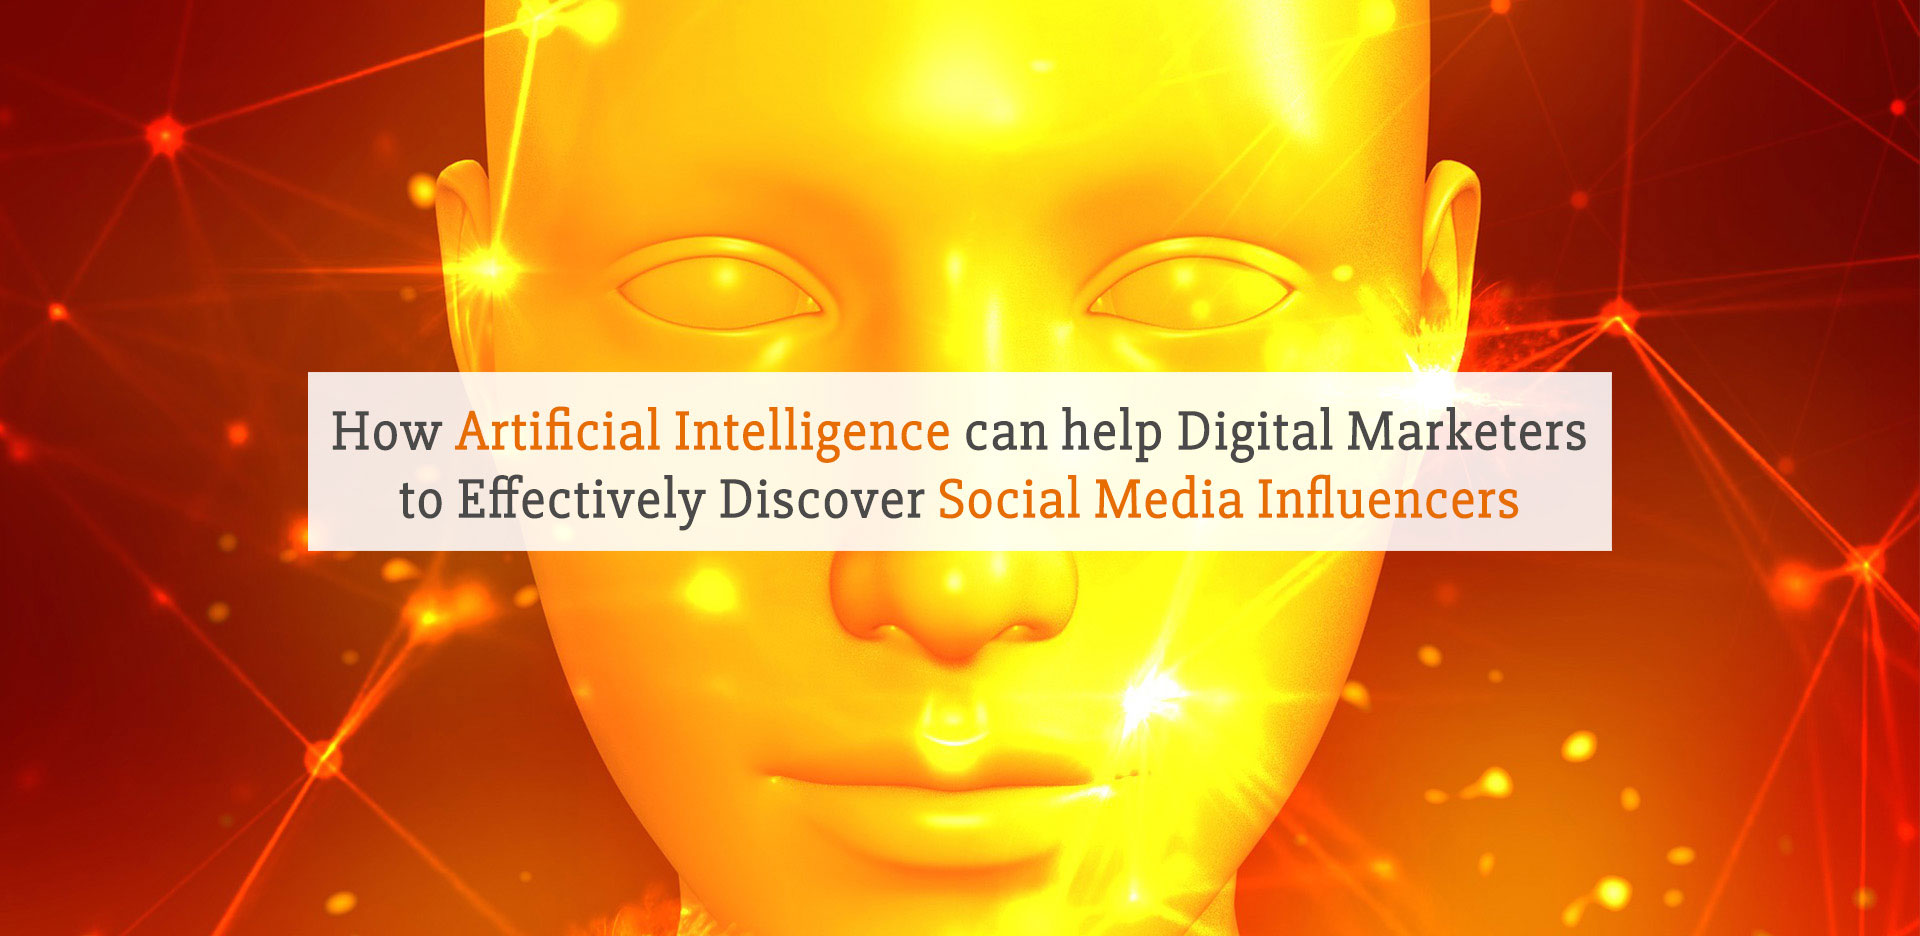 How-Artificial-Intelligence-can-help-Digital-Marketers-to-Effectively-Discover-Social-Media-Influencers